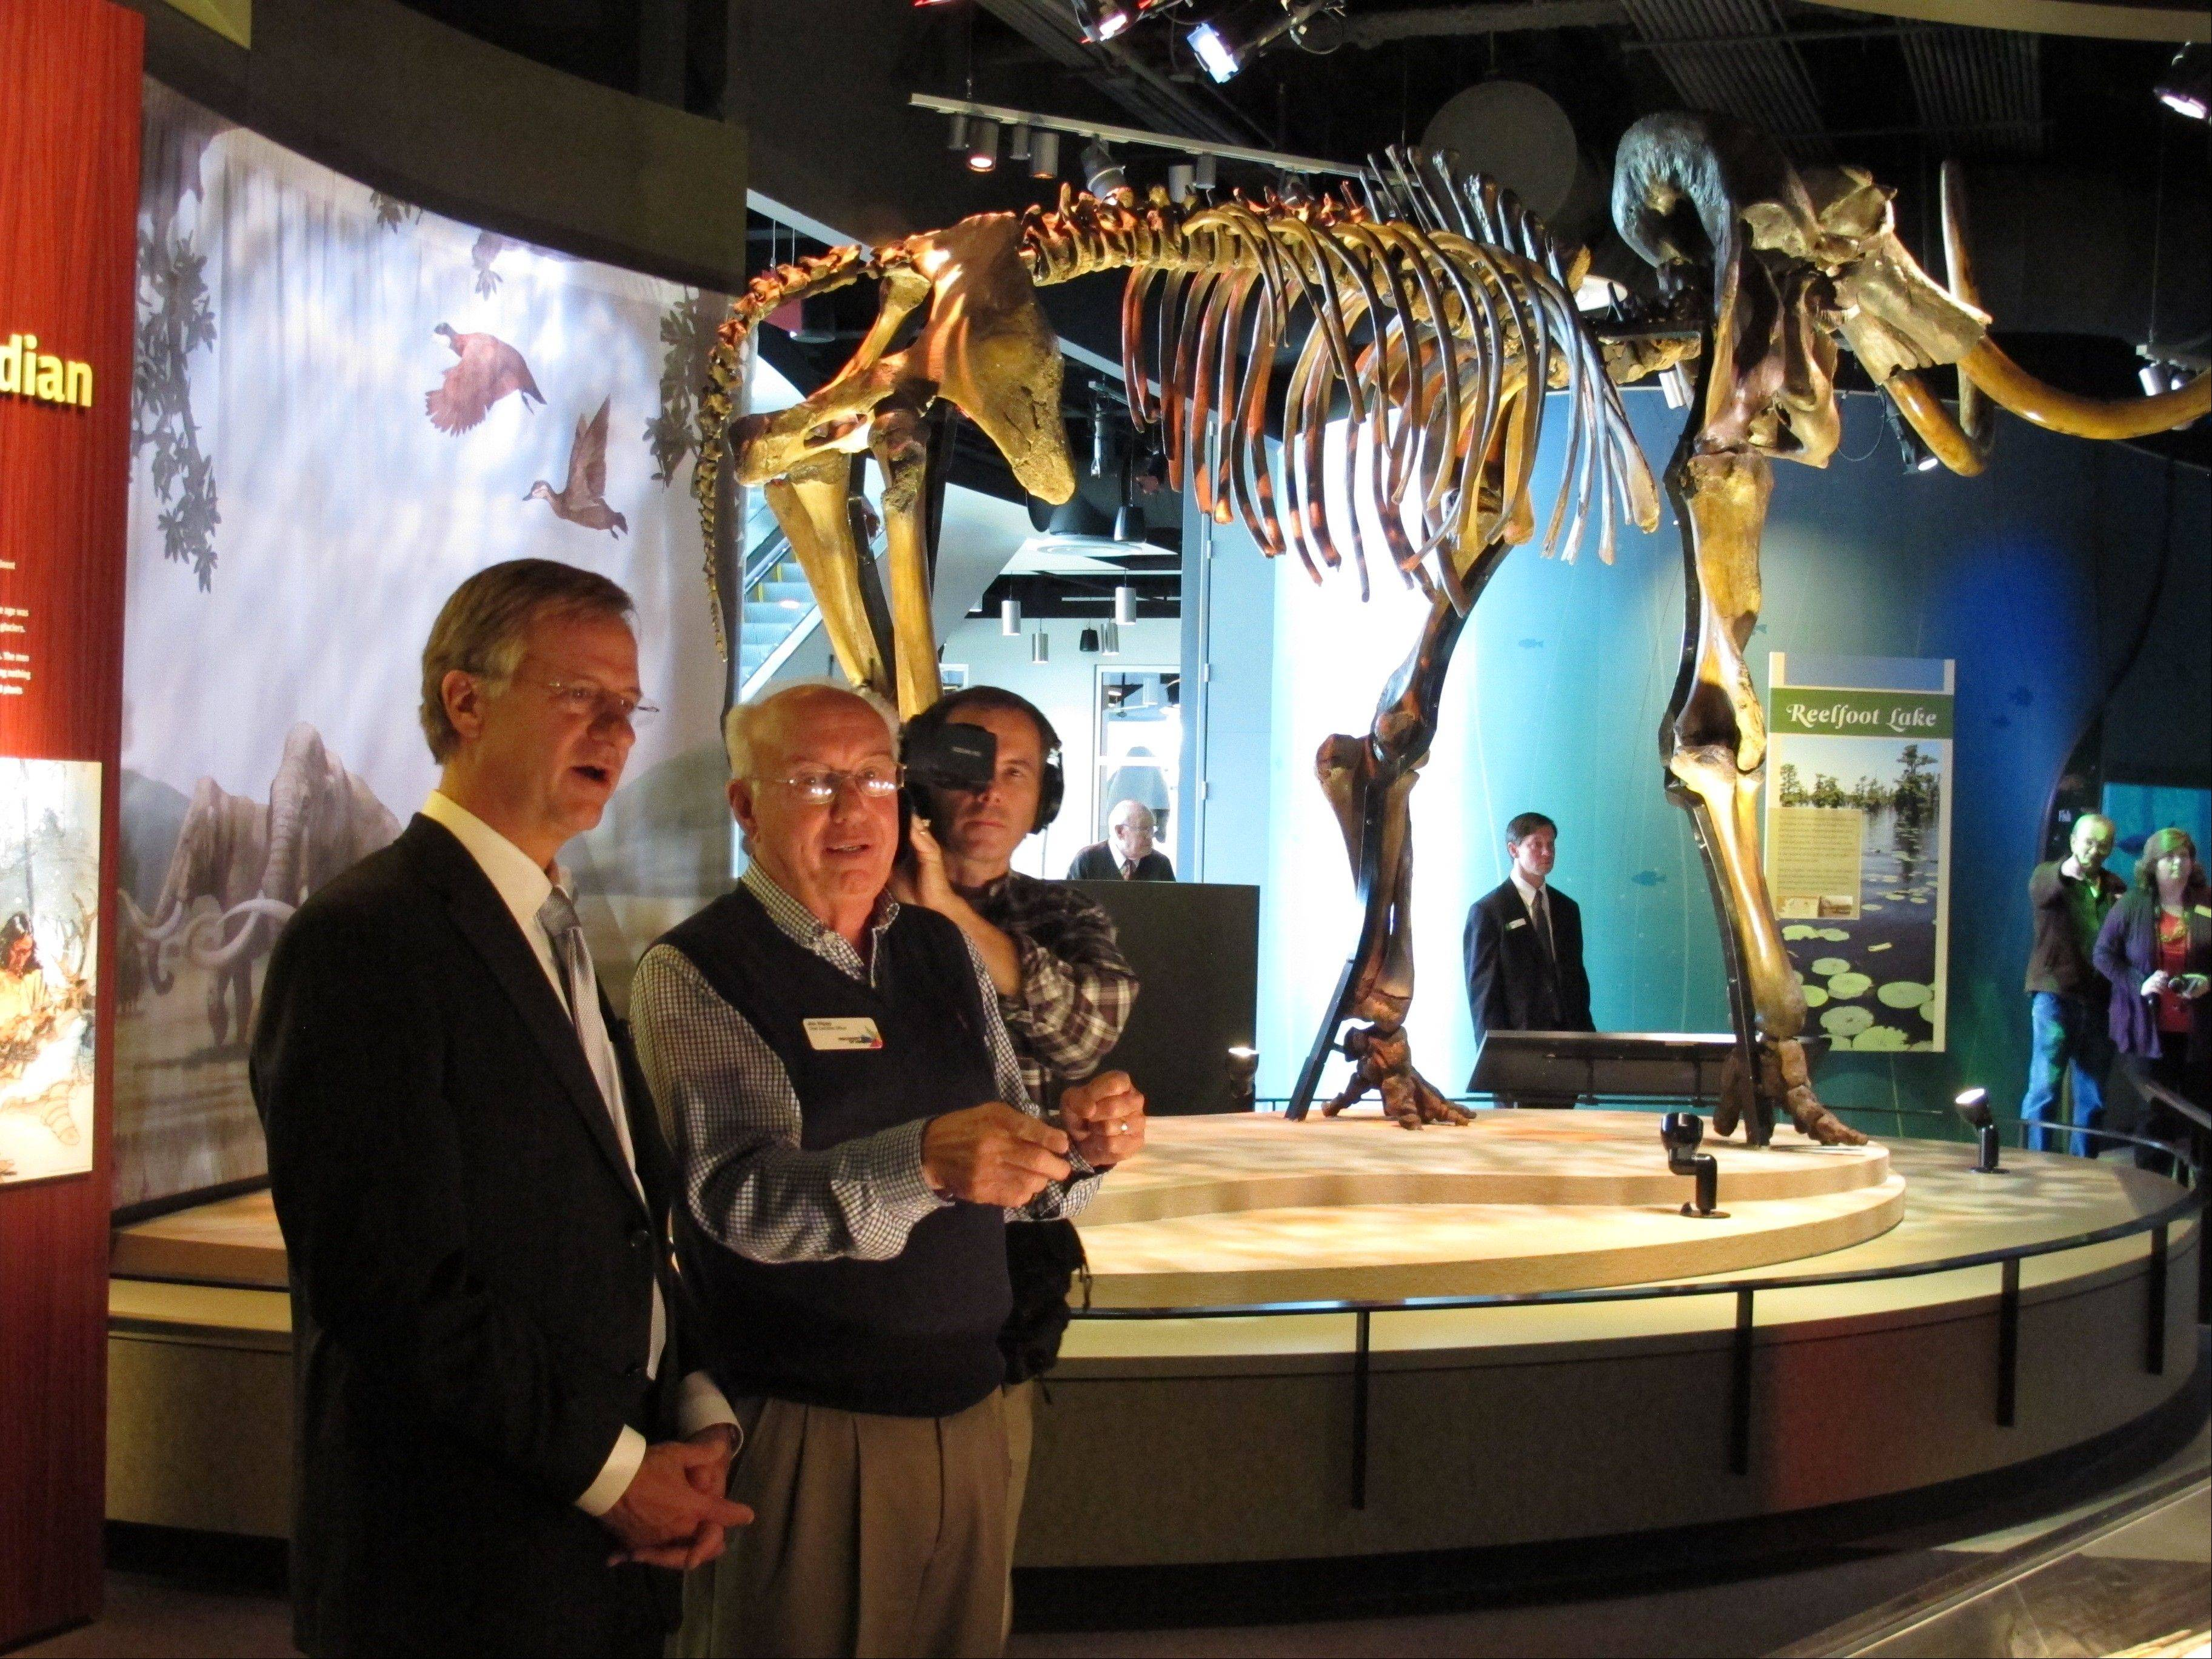 Tennessee Gov. Bill Haslam, left, and Discovery Park of America CEO Jim Rippy look at exhibits during a tour of the new museum and educational venue.